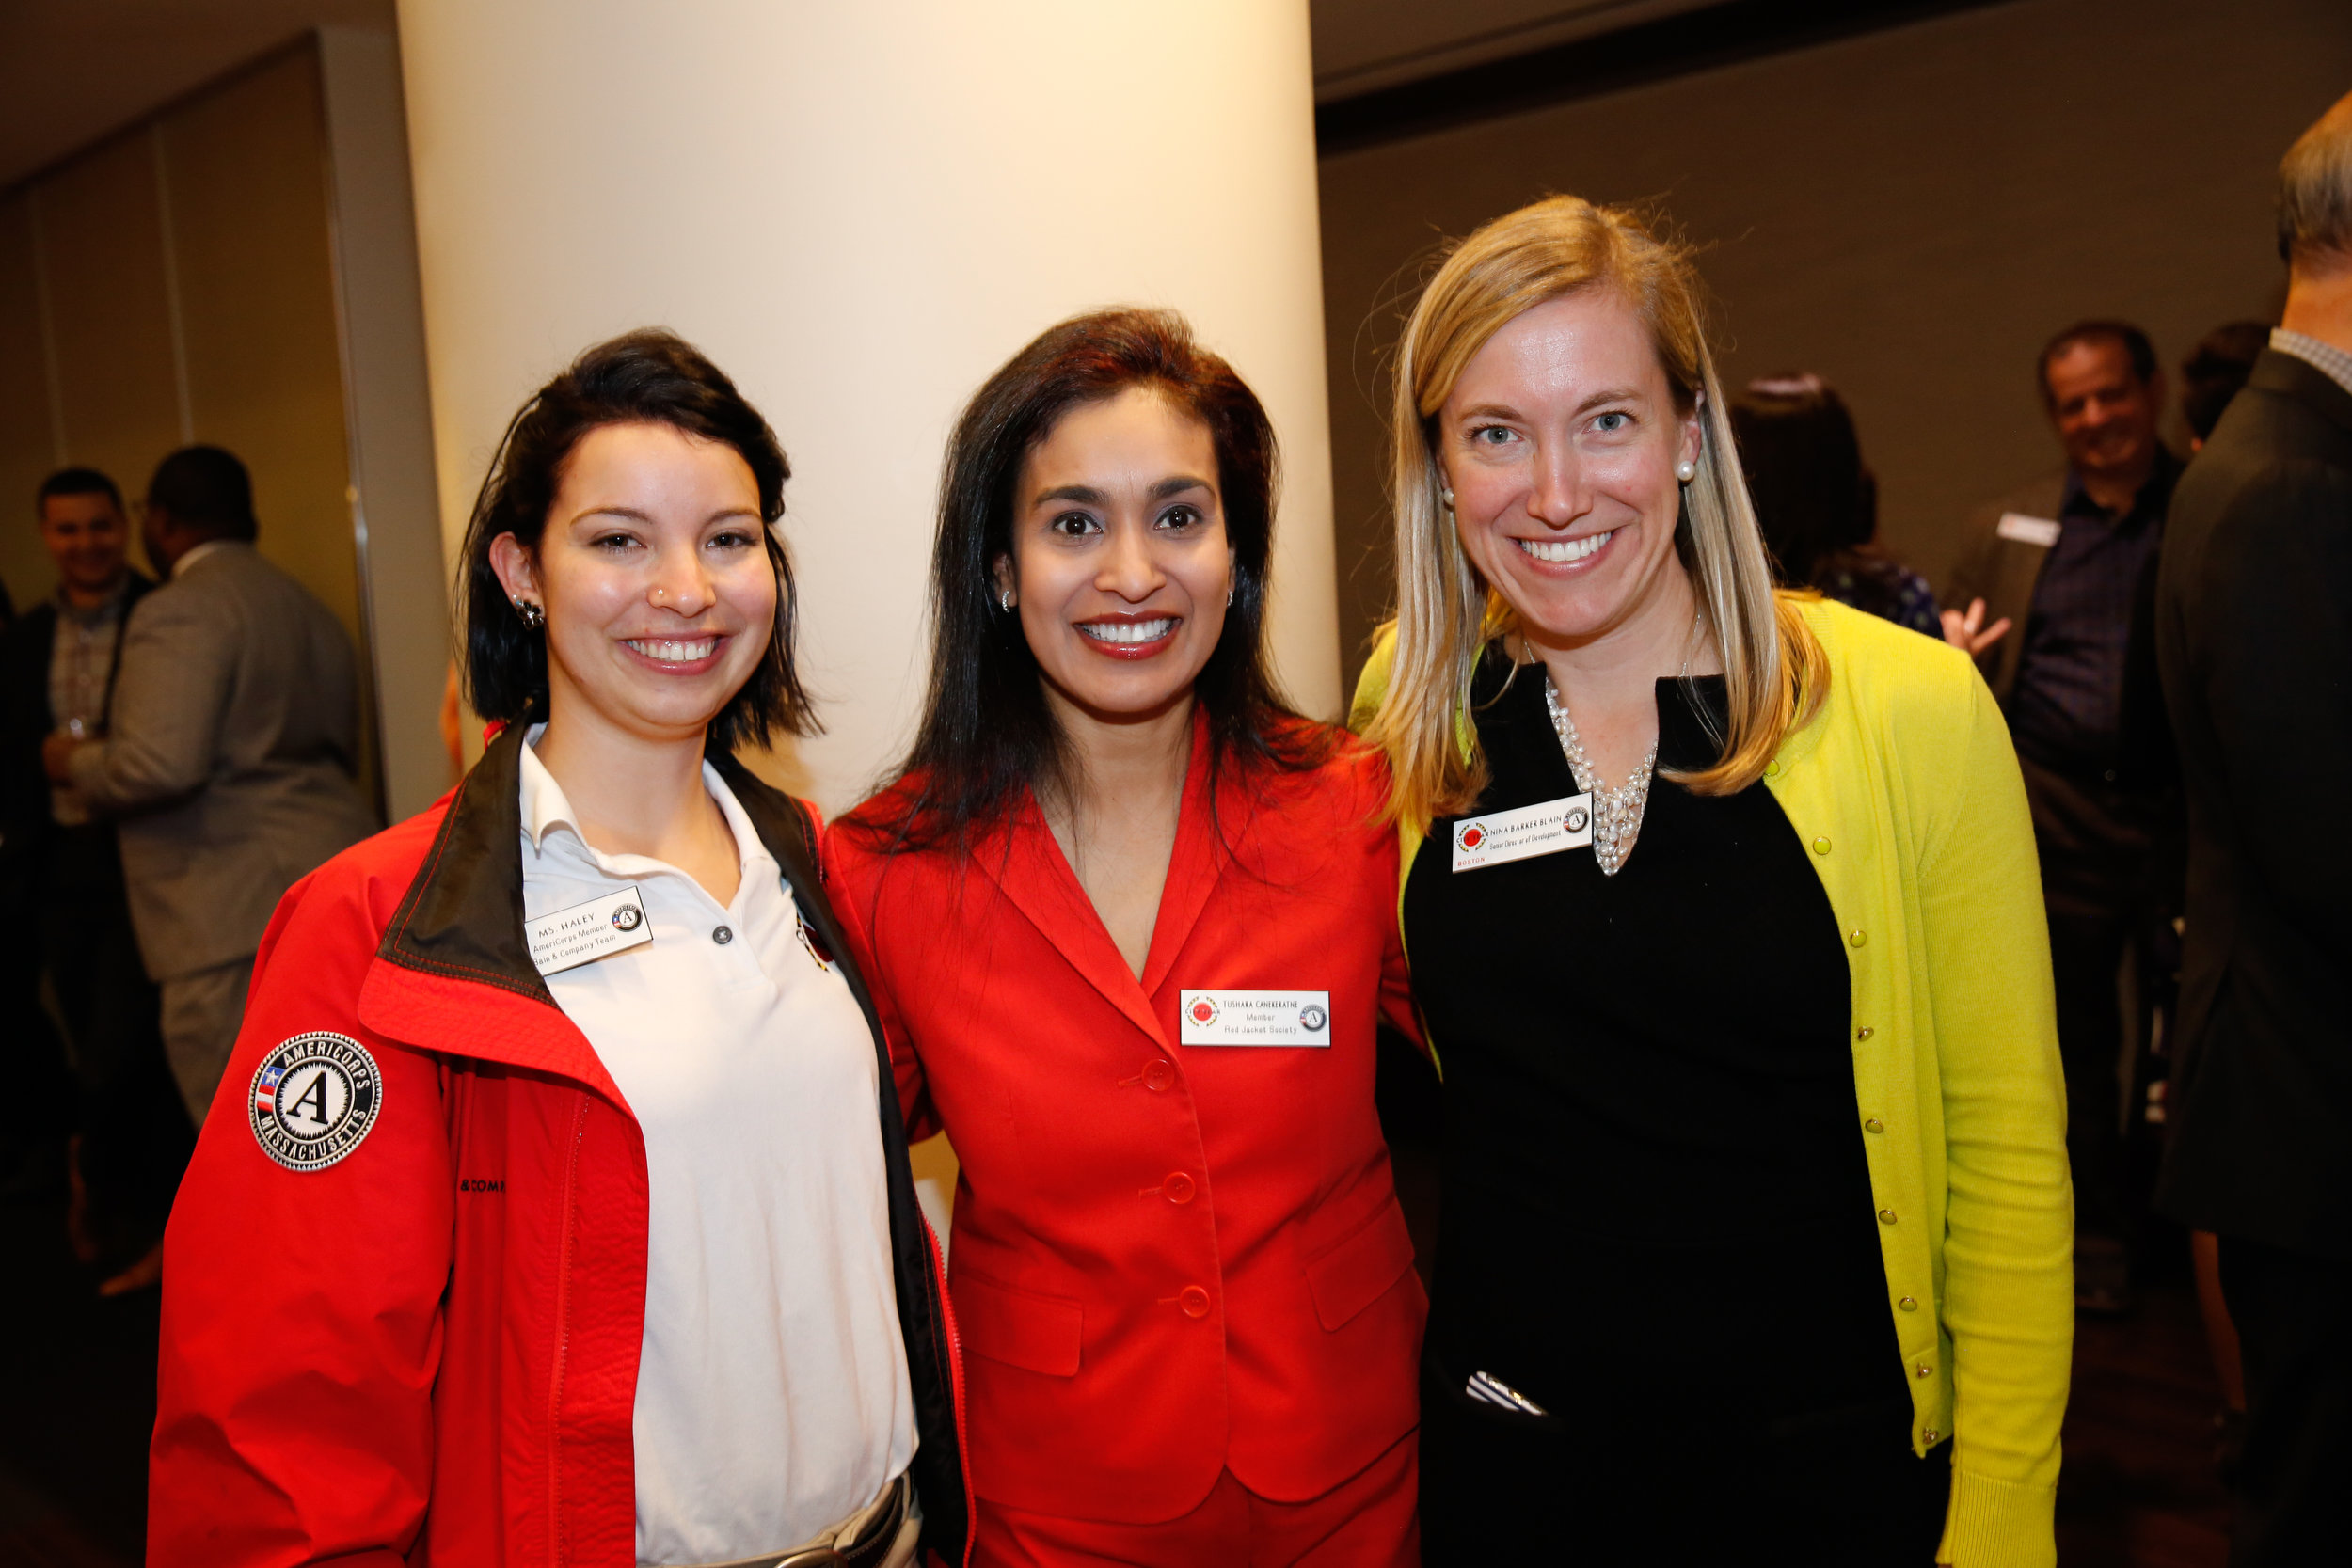 AmeriCorps member Haley Burgess, Tushara Canekeratne and Nina Barker at the Bain Capital Reception